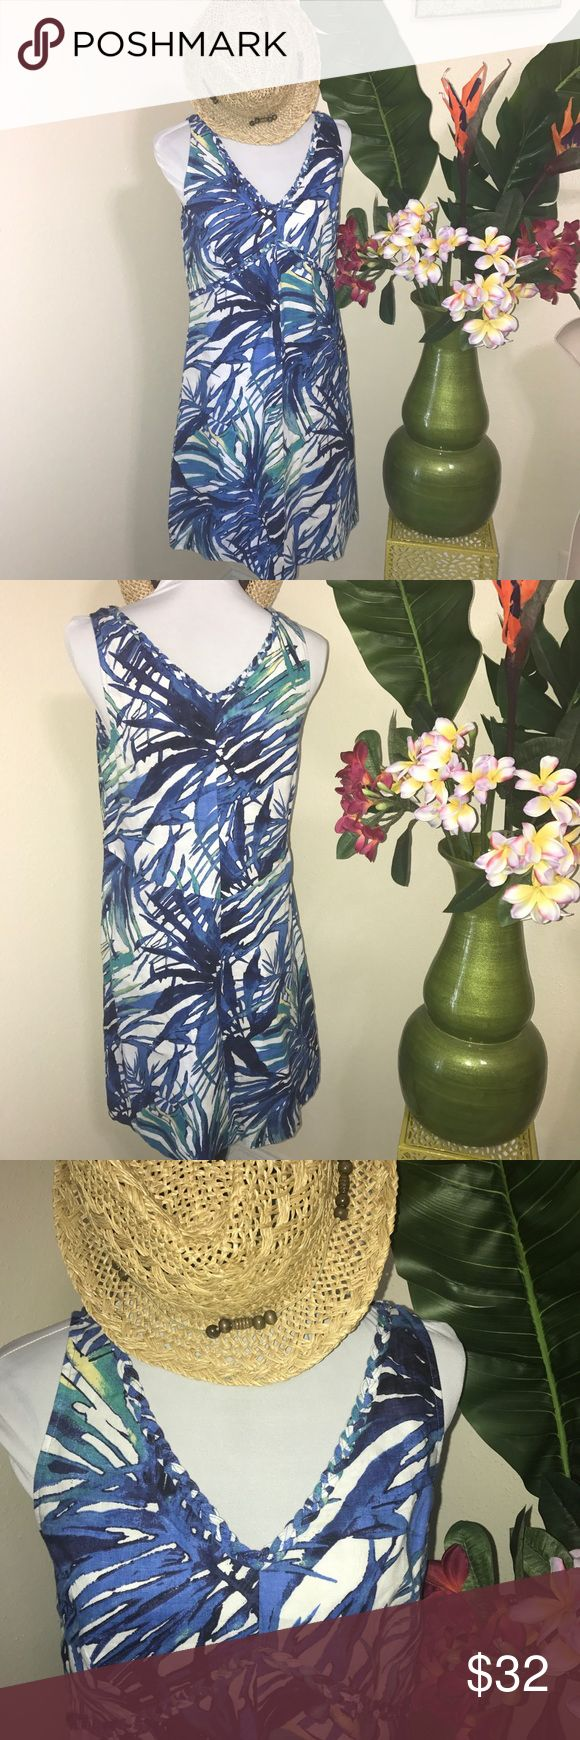 Tommy Bahama NWOT linen palm print dress size 6 Tommy Bahama tank dress from the outlet size 6 linen Palm prints in blue and green shades on white background. See the details in the stitching on the neckline, reminiscent of many Tommy Bahama style's. Save money with bundle purchases from my closet. Tommy Bahama Dresses Midi